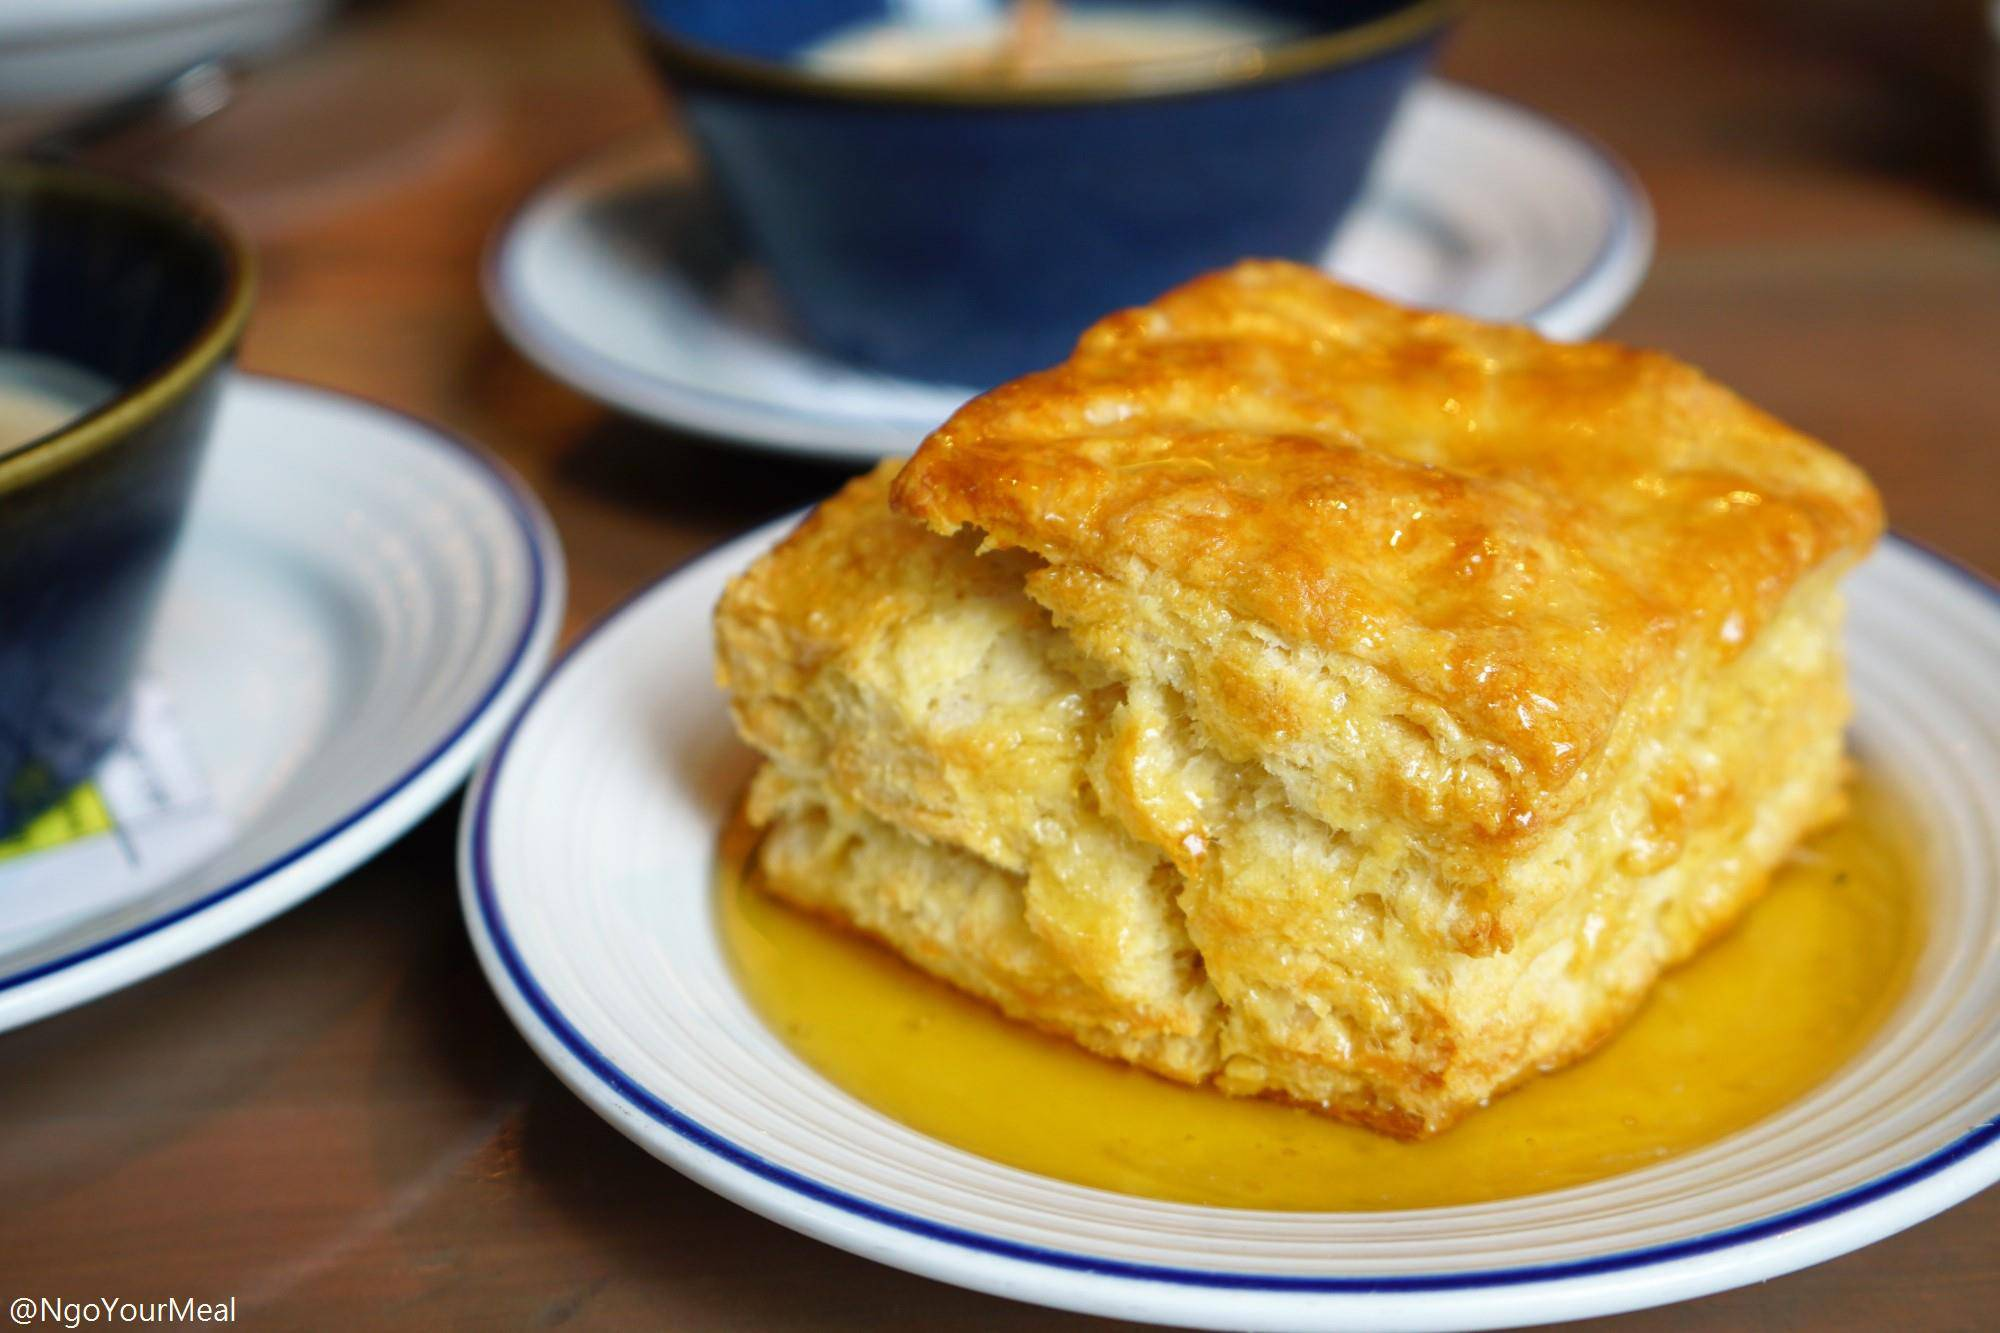 Buttermilk Biscuit at Island Creek Oyster Bar in Boston